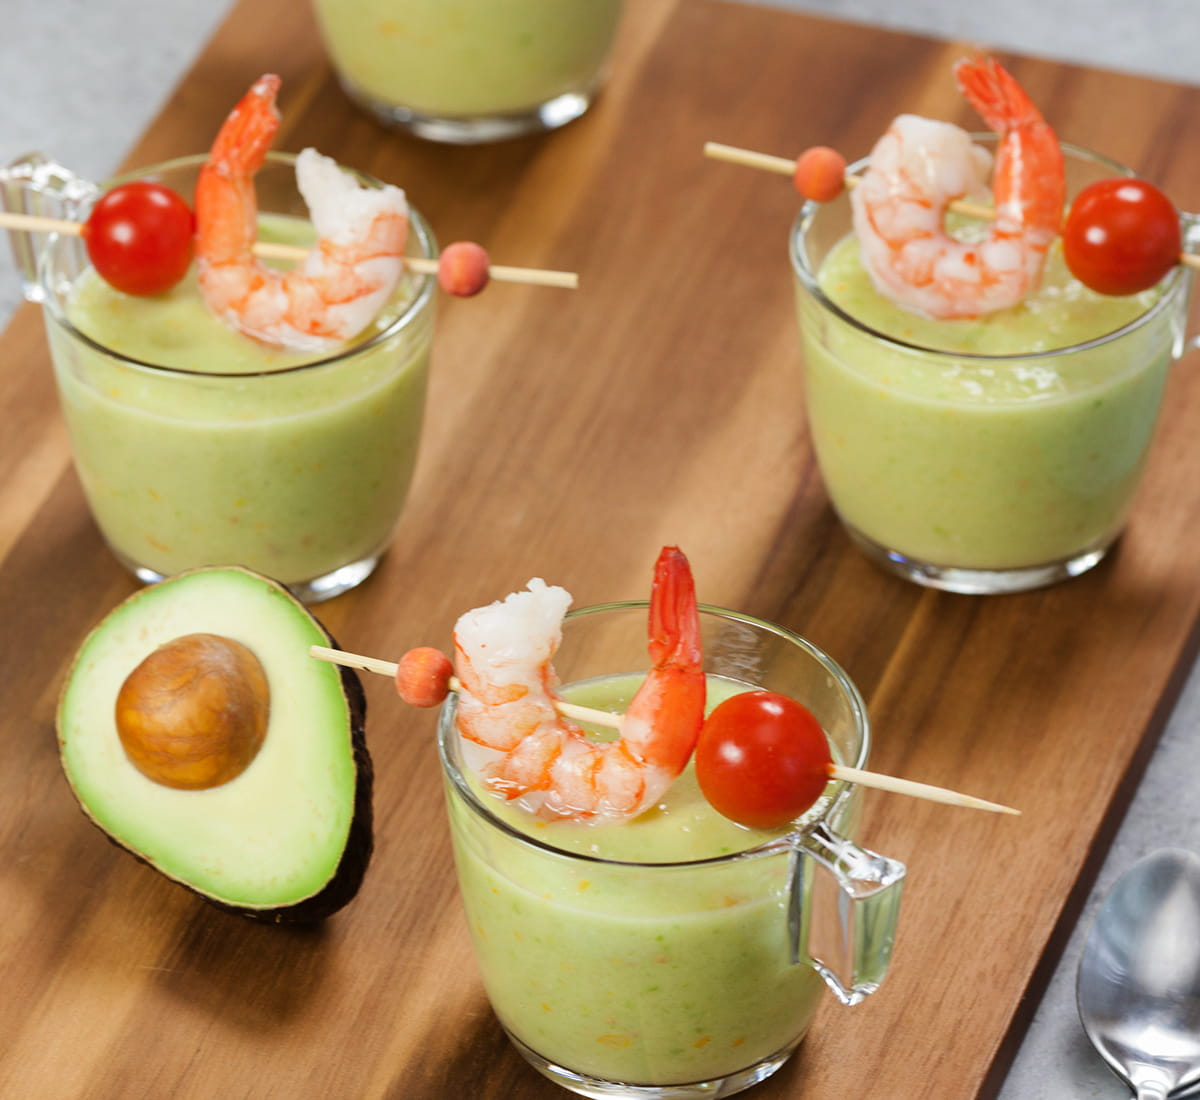 Chilled Avocado Gazpacho with Shrimp